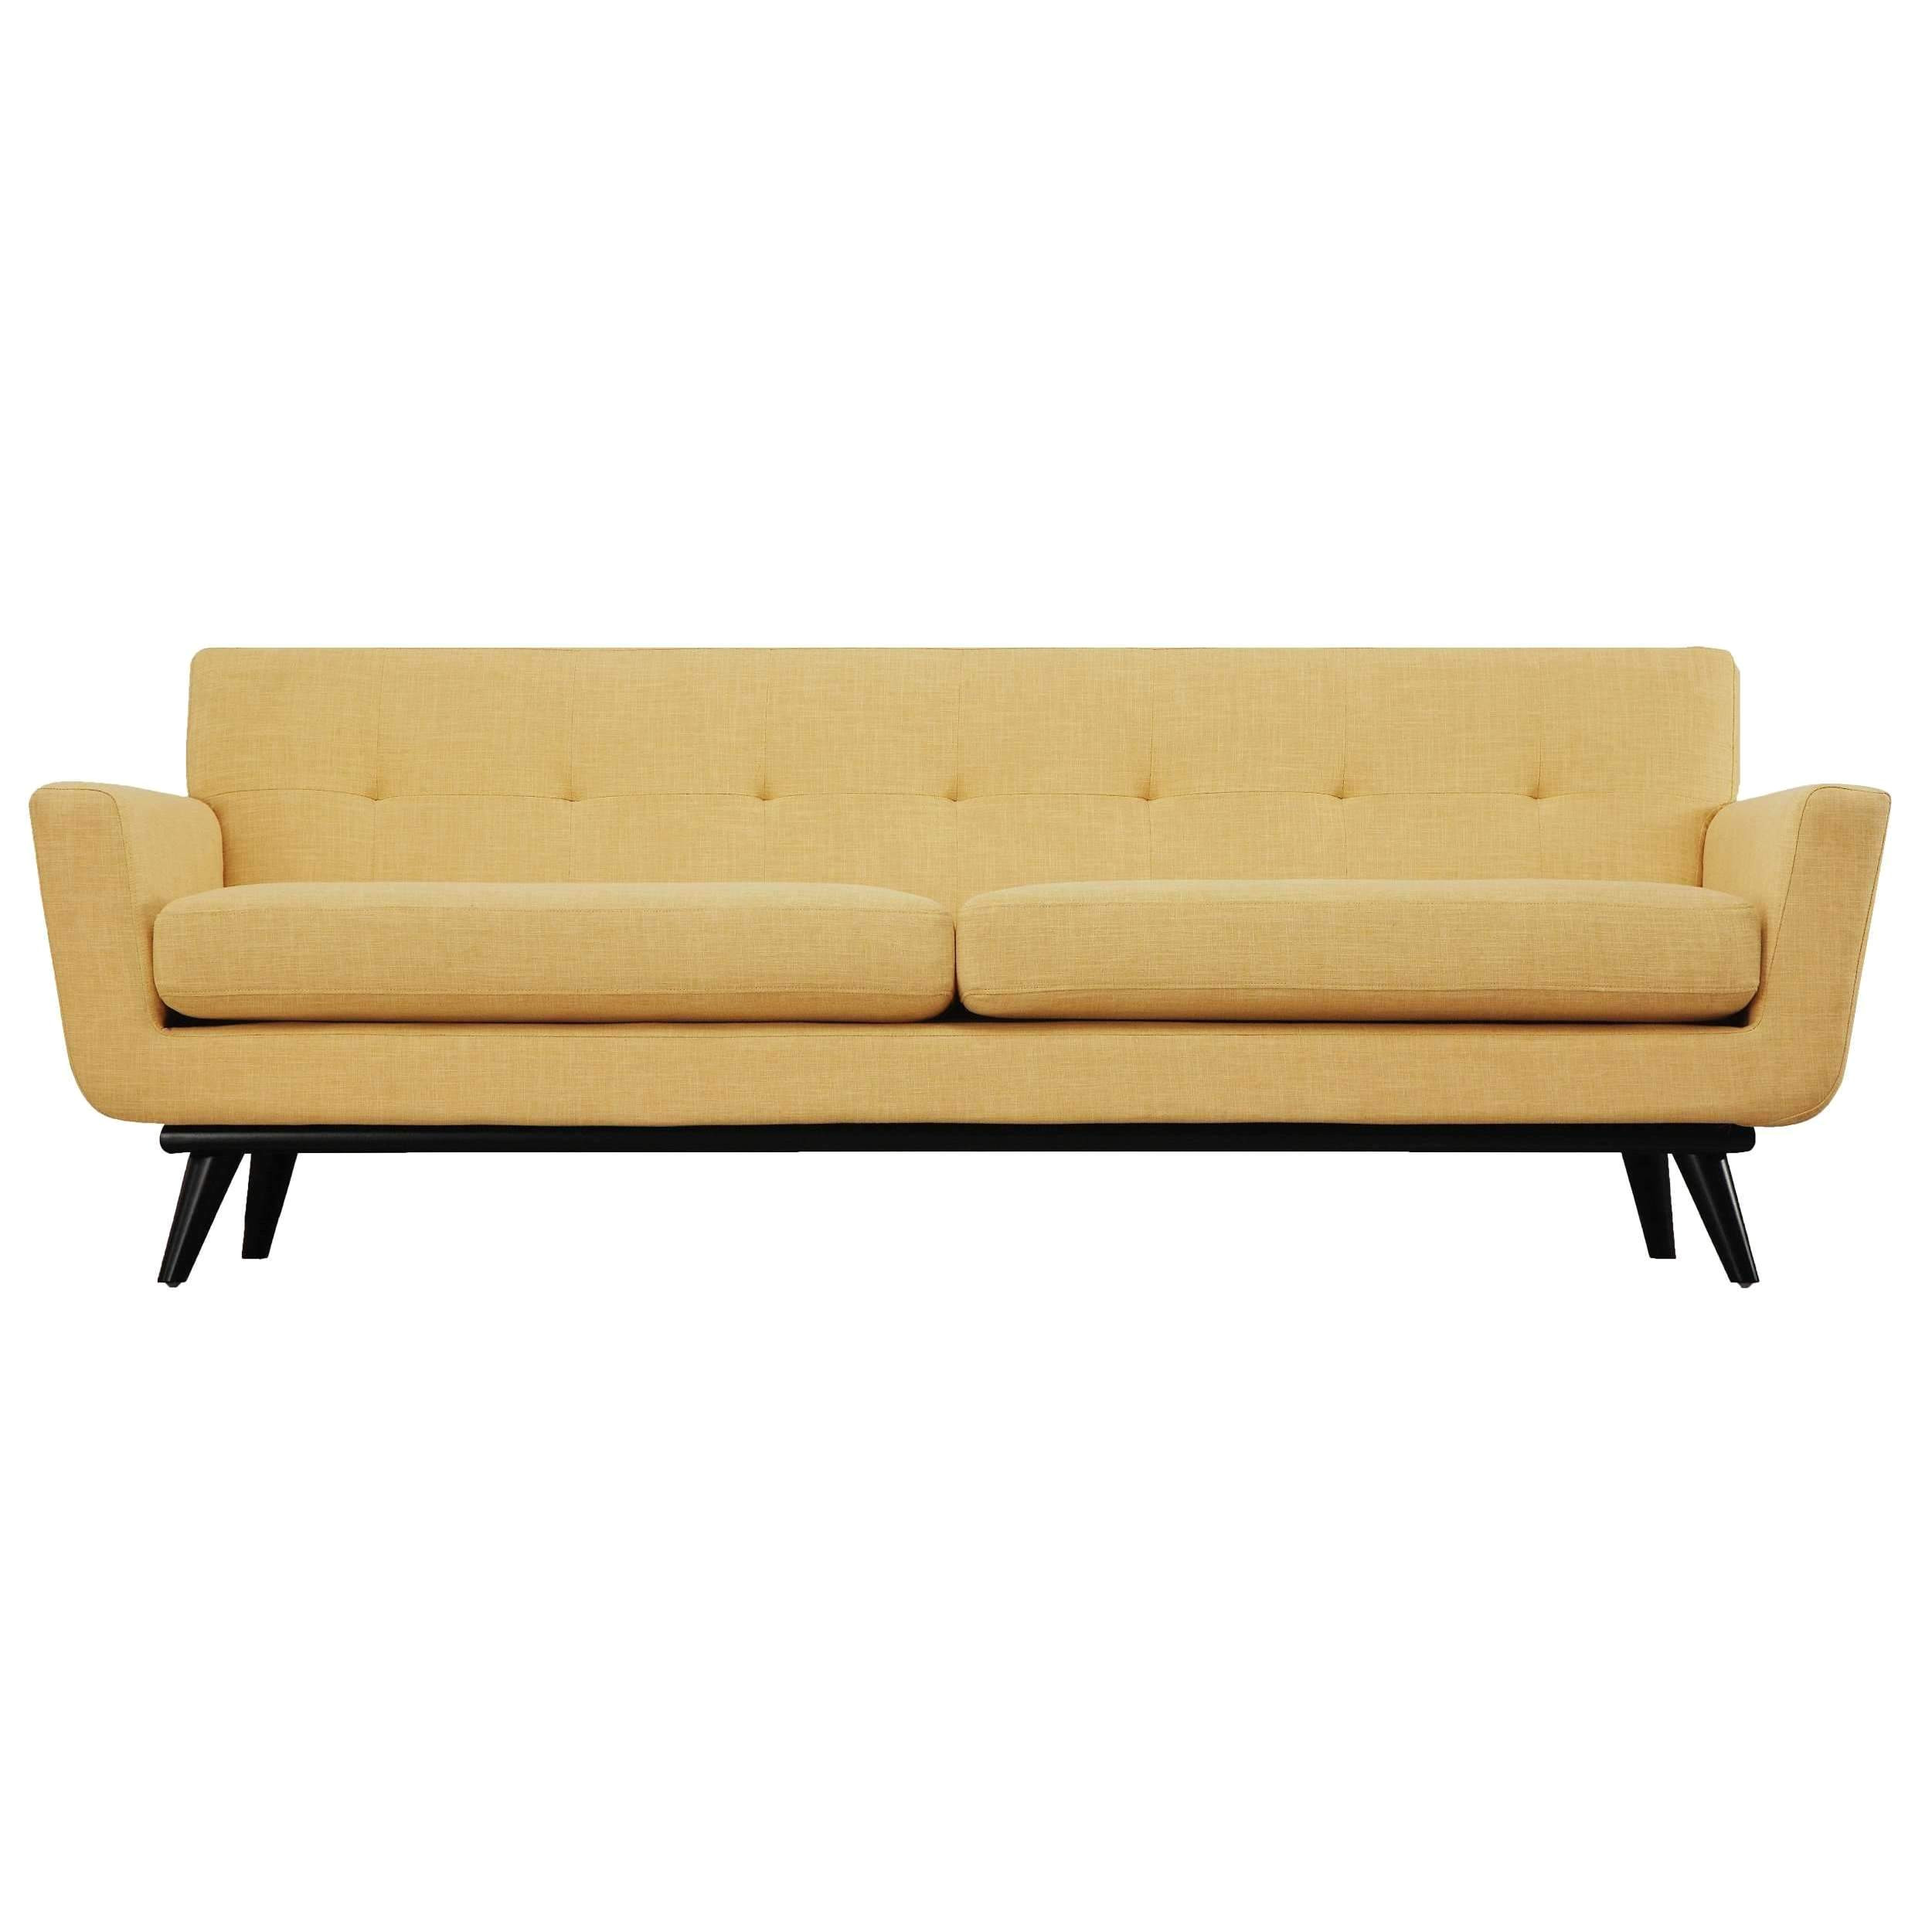 Serta Meredith Convertible sofa Leather 30 New tov Furniture sofa ...